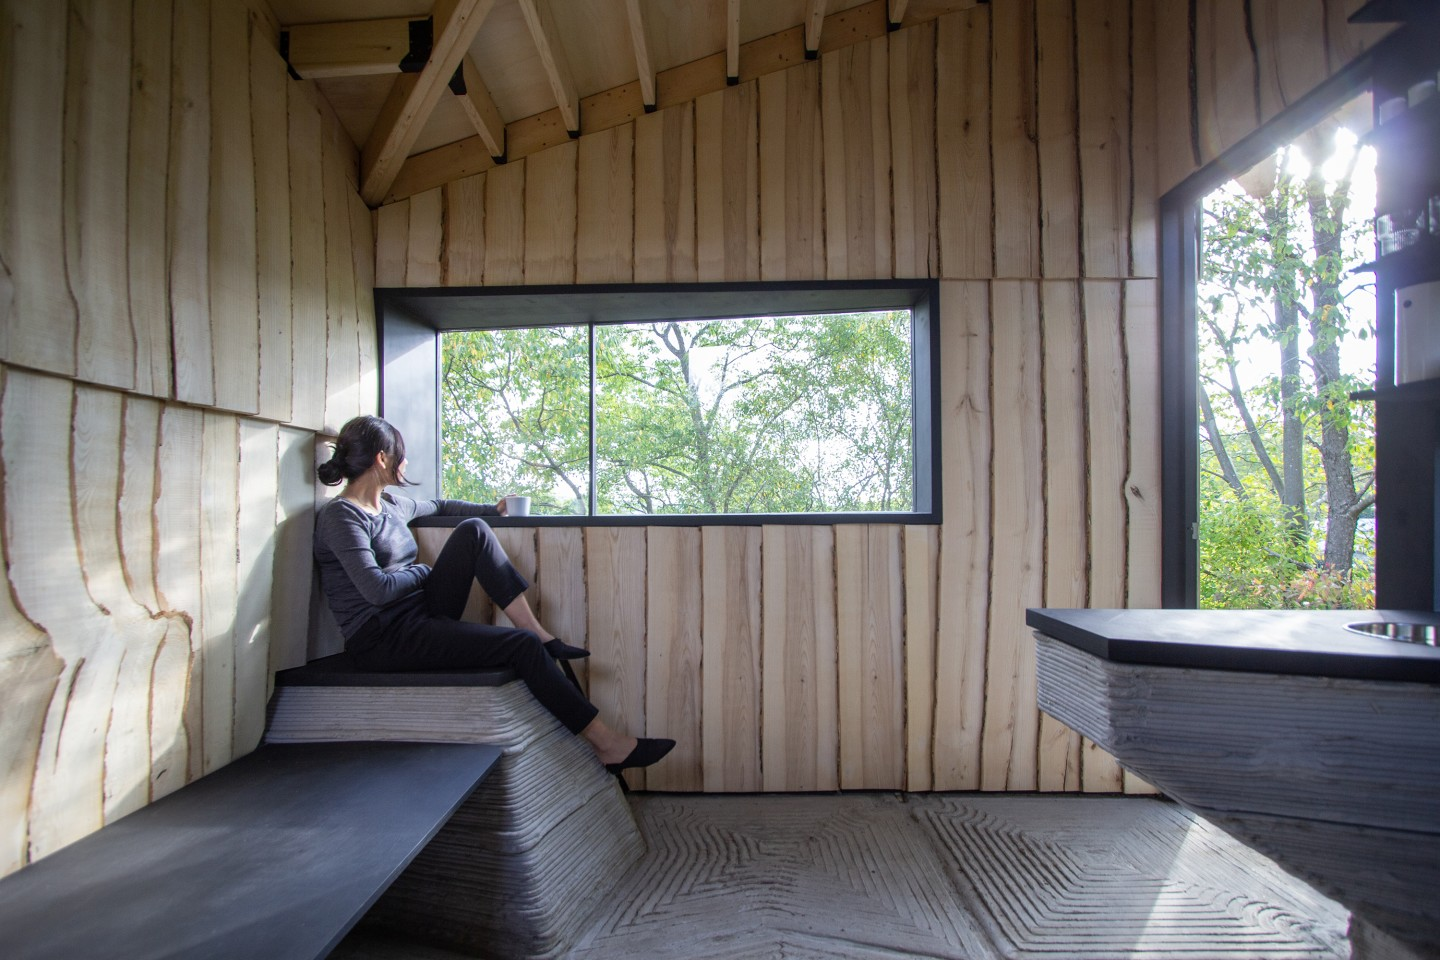 Ashen Cabin's interior decor has a simple rugged appearance thanks to the use of 3D-printed concrete and beetle-damaged wood